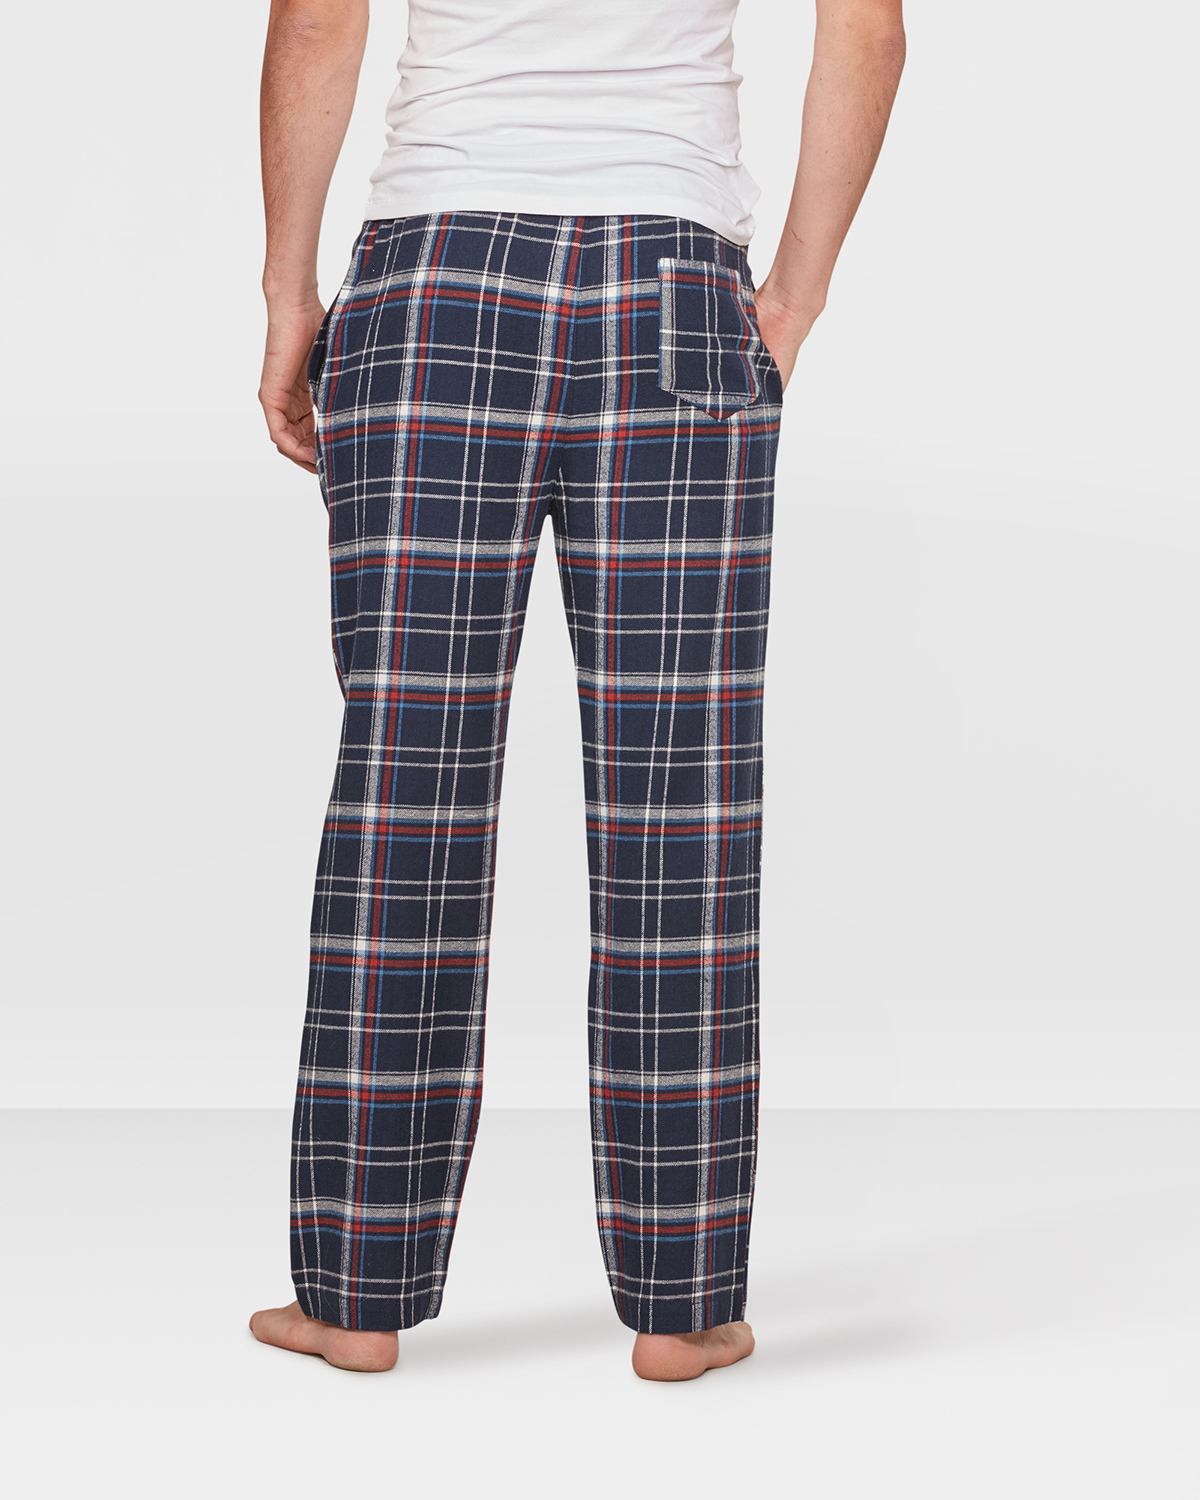 HEREN FLANEL CHECKED PYJAMABROEK | 79523387 WE Fashion